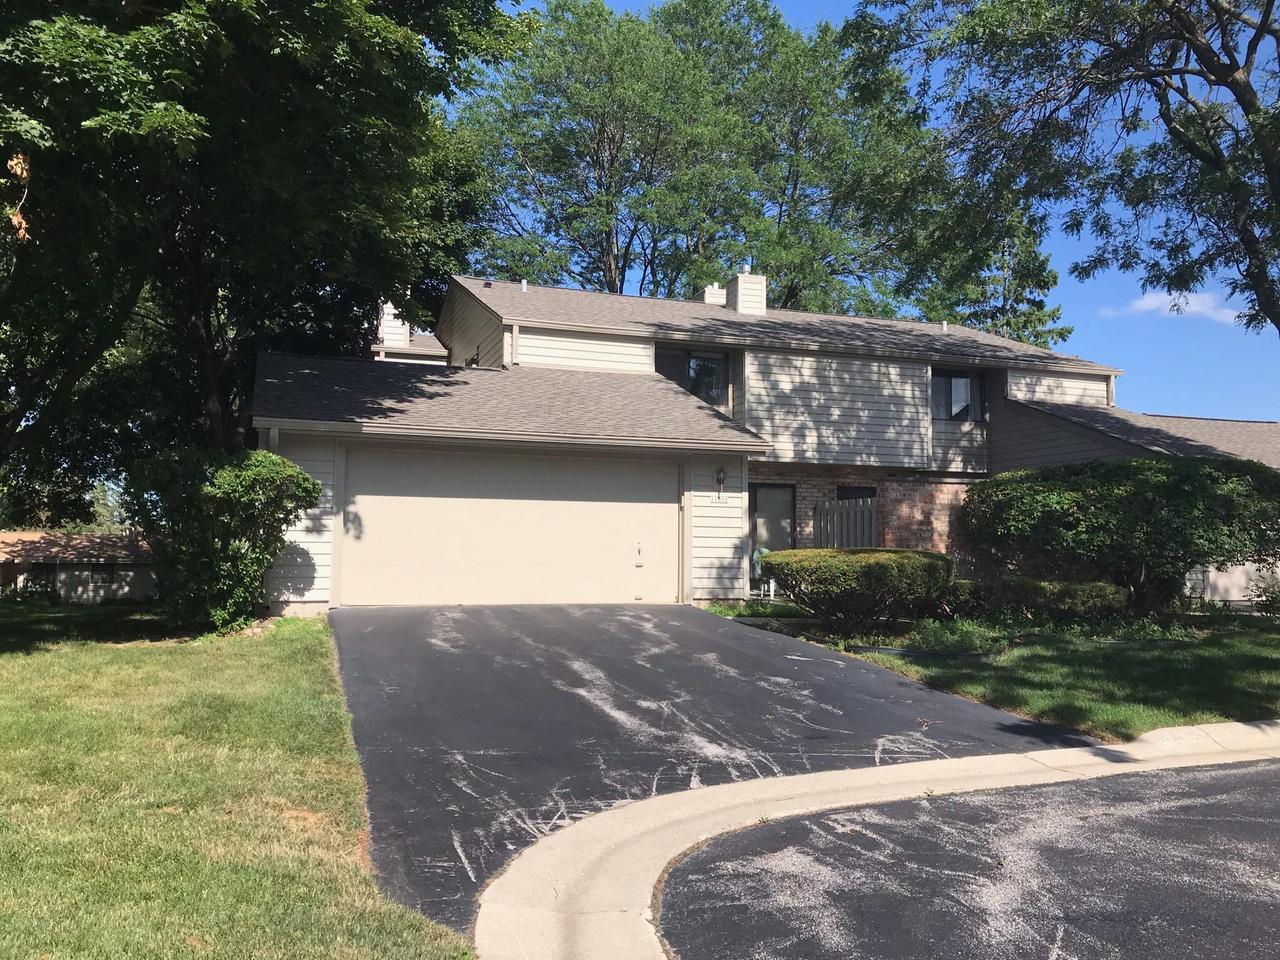 WELCOME TO THIS BEAUTIFUL TWO STORY CONDO HOME! THIS COZY CONDO FEATURES AN ATTACHED TWO CAR GARAGE, THREE BEDROOMS, 1.5 BATH,AND A VERY COMFORTABLE GALLEY KITCHEN.IT ALSO FEATURES A FULL BASEMENT & IN UNIT LAUNDRY AREA,, BRAND NEW ROOF AND SIDING, ALL INSTALLED WITHIN THE LAST 12 MONTHS. THIS CONDO IS LOCATED IN A VERY SECLUDED AREA OF MEQUON AND OVER LOOKS THE SPACIOUS SWIMMING POOL AND NEWLY REMODELED CLUB HOUSE, WHICH FEATURES ADDITIONAL PARKING FOR YOUR BOAT, RV'S AND ANY OTHER RECREATIONAL TOYS YOU MIGHT HAVE. THIS IS TRULY COUNTRY LIVING AT ITS BEST, AS ITS ALSO LOCATED CLOSE TO LOCAL ENTERTAINMENT AND SHOPPING!